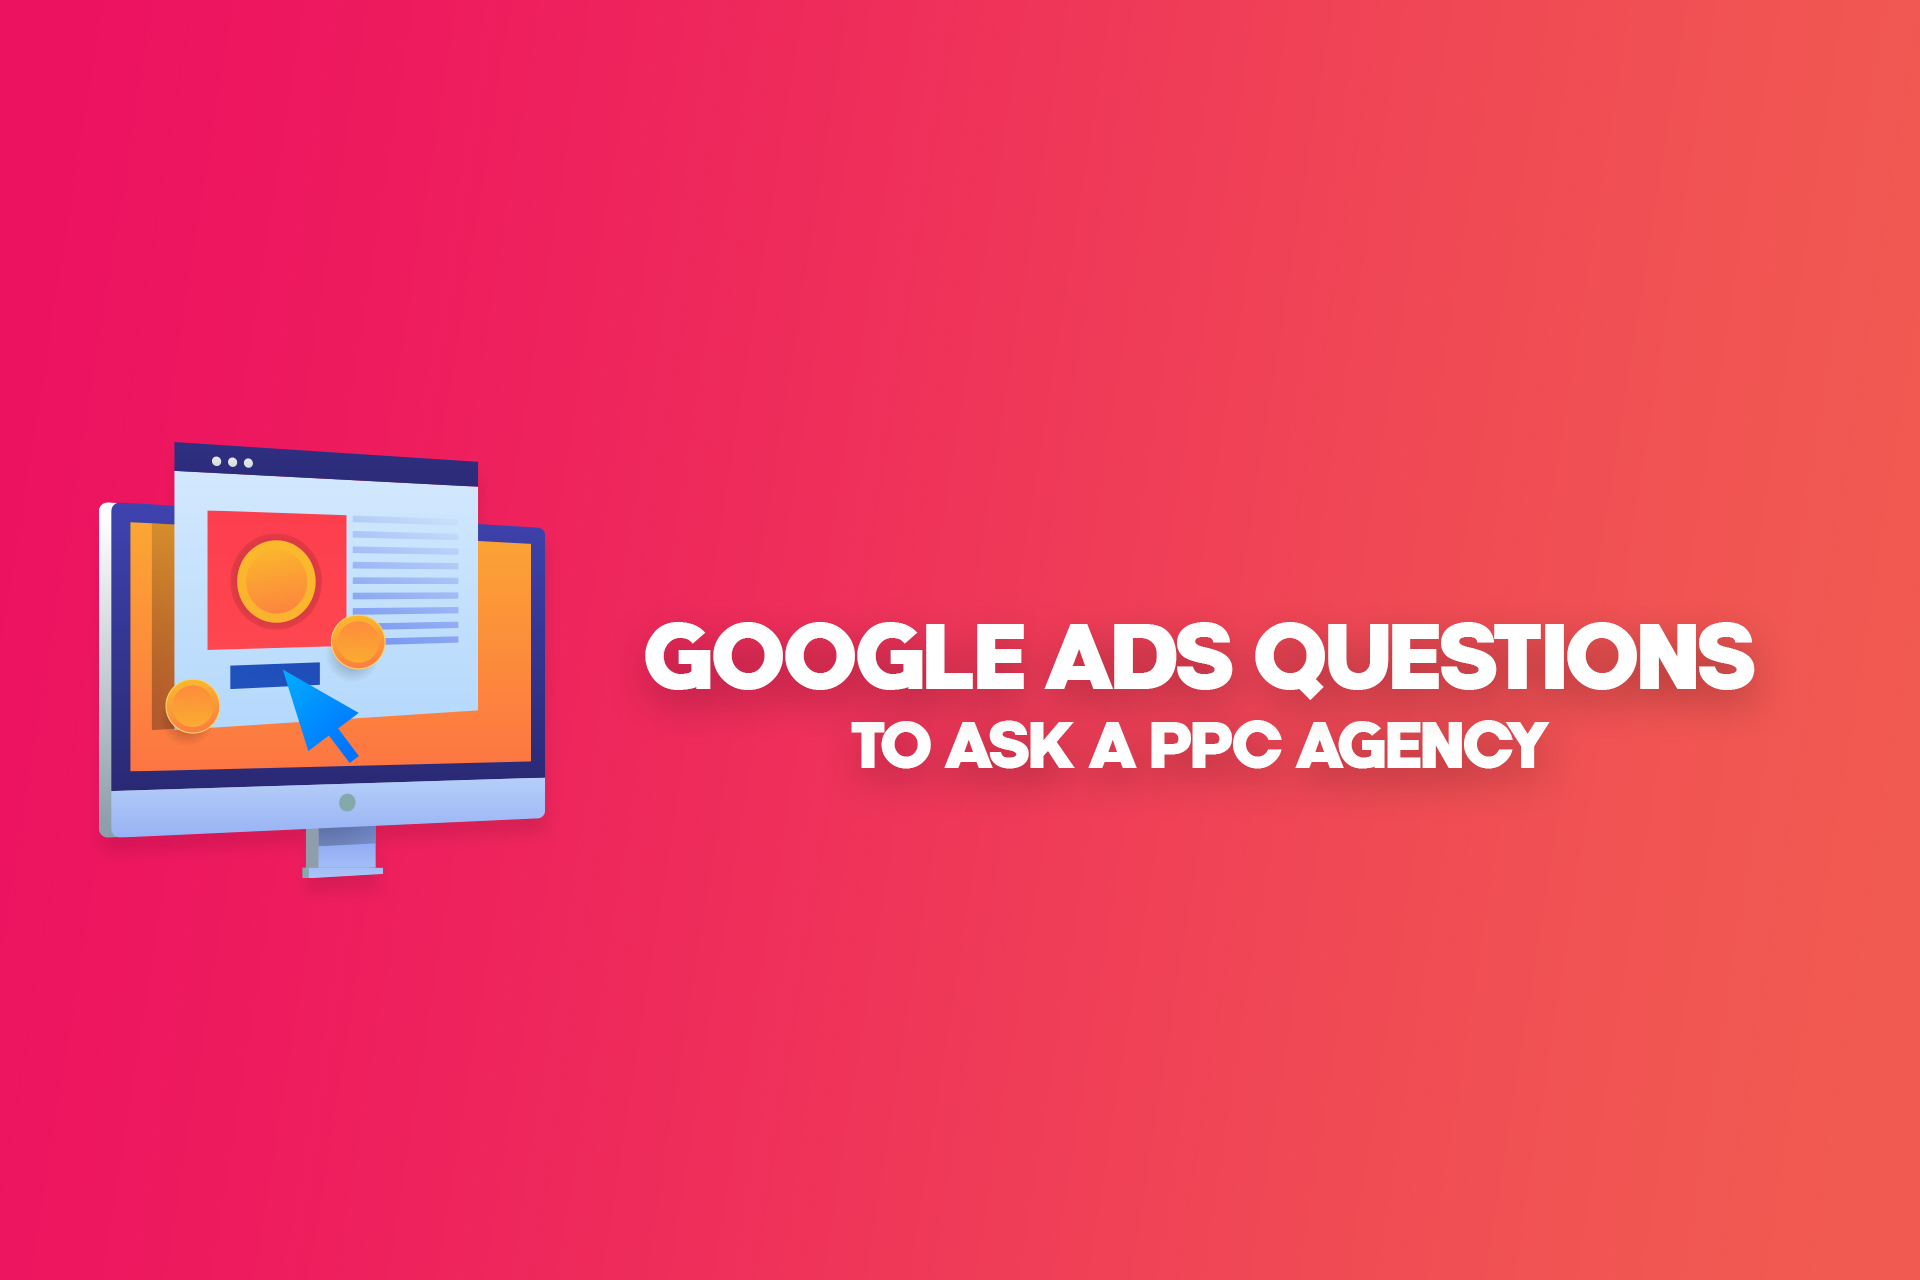 Top 10 Google Ads Questions to Ask a PPC Agency